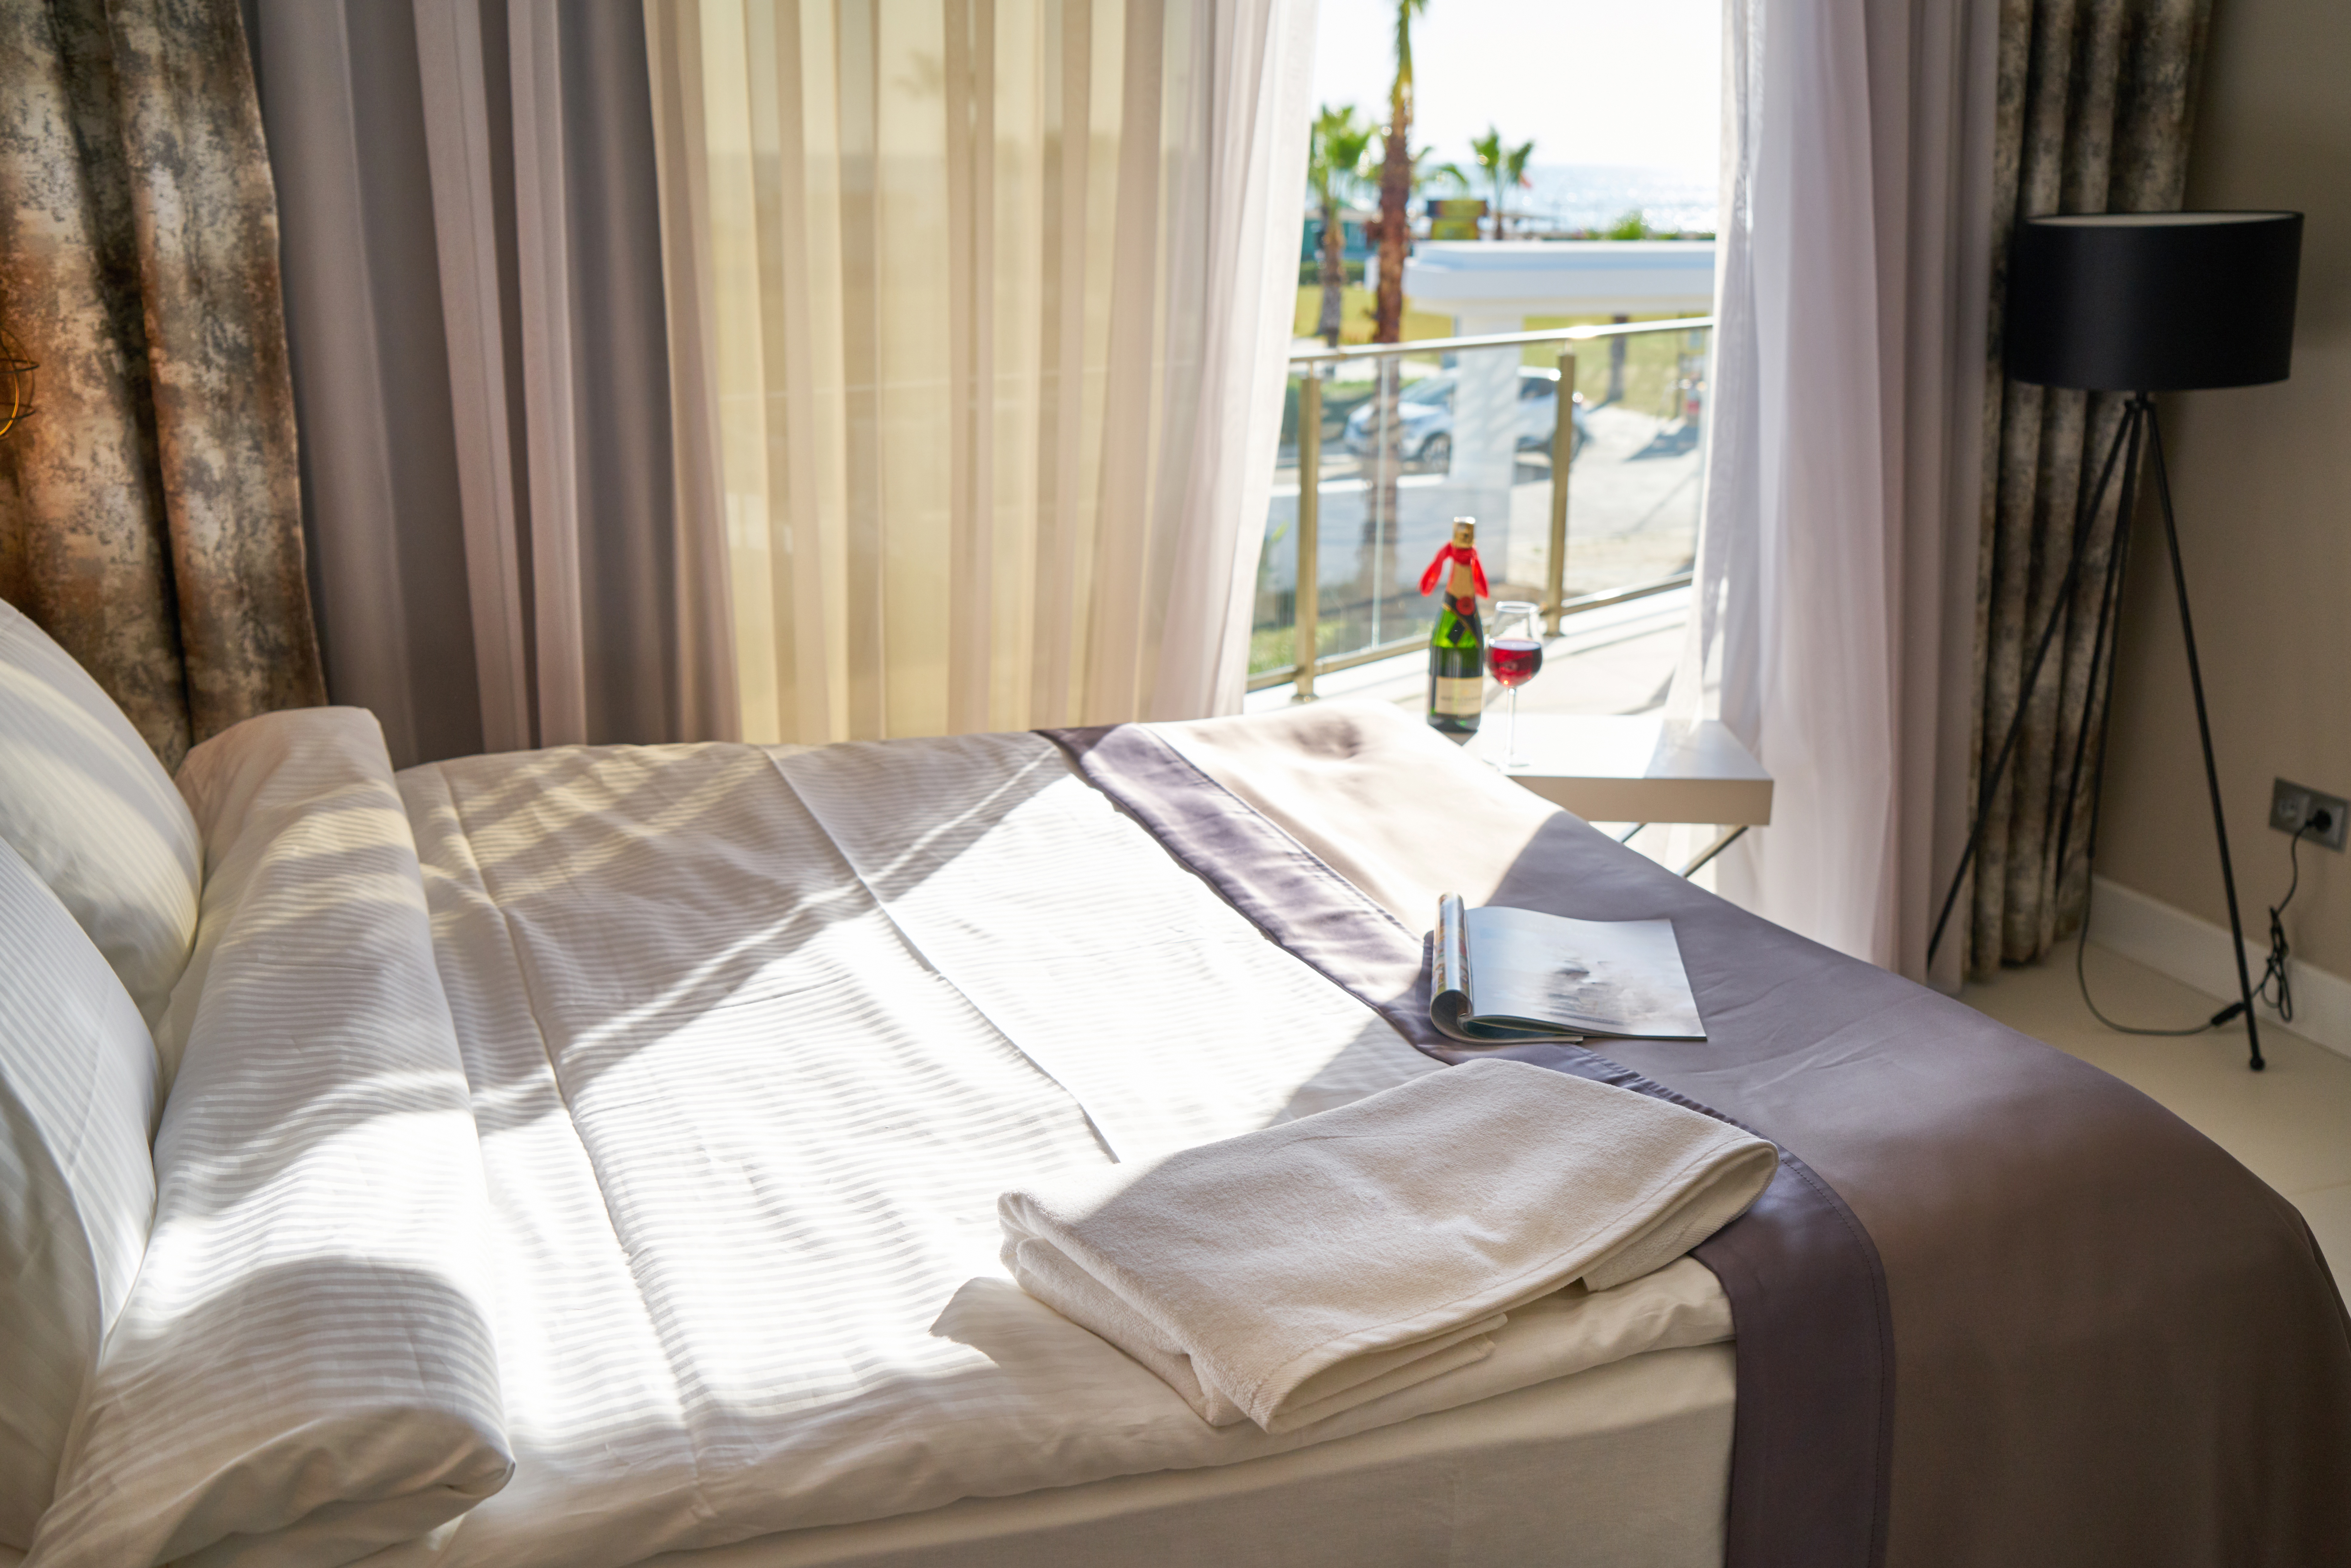 A bedroom with sunlight on bedsheets